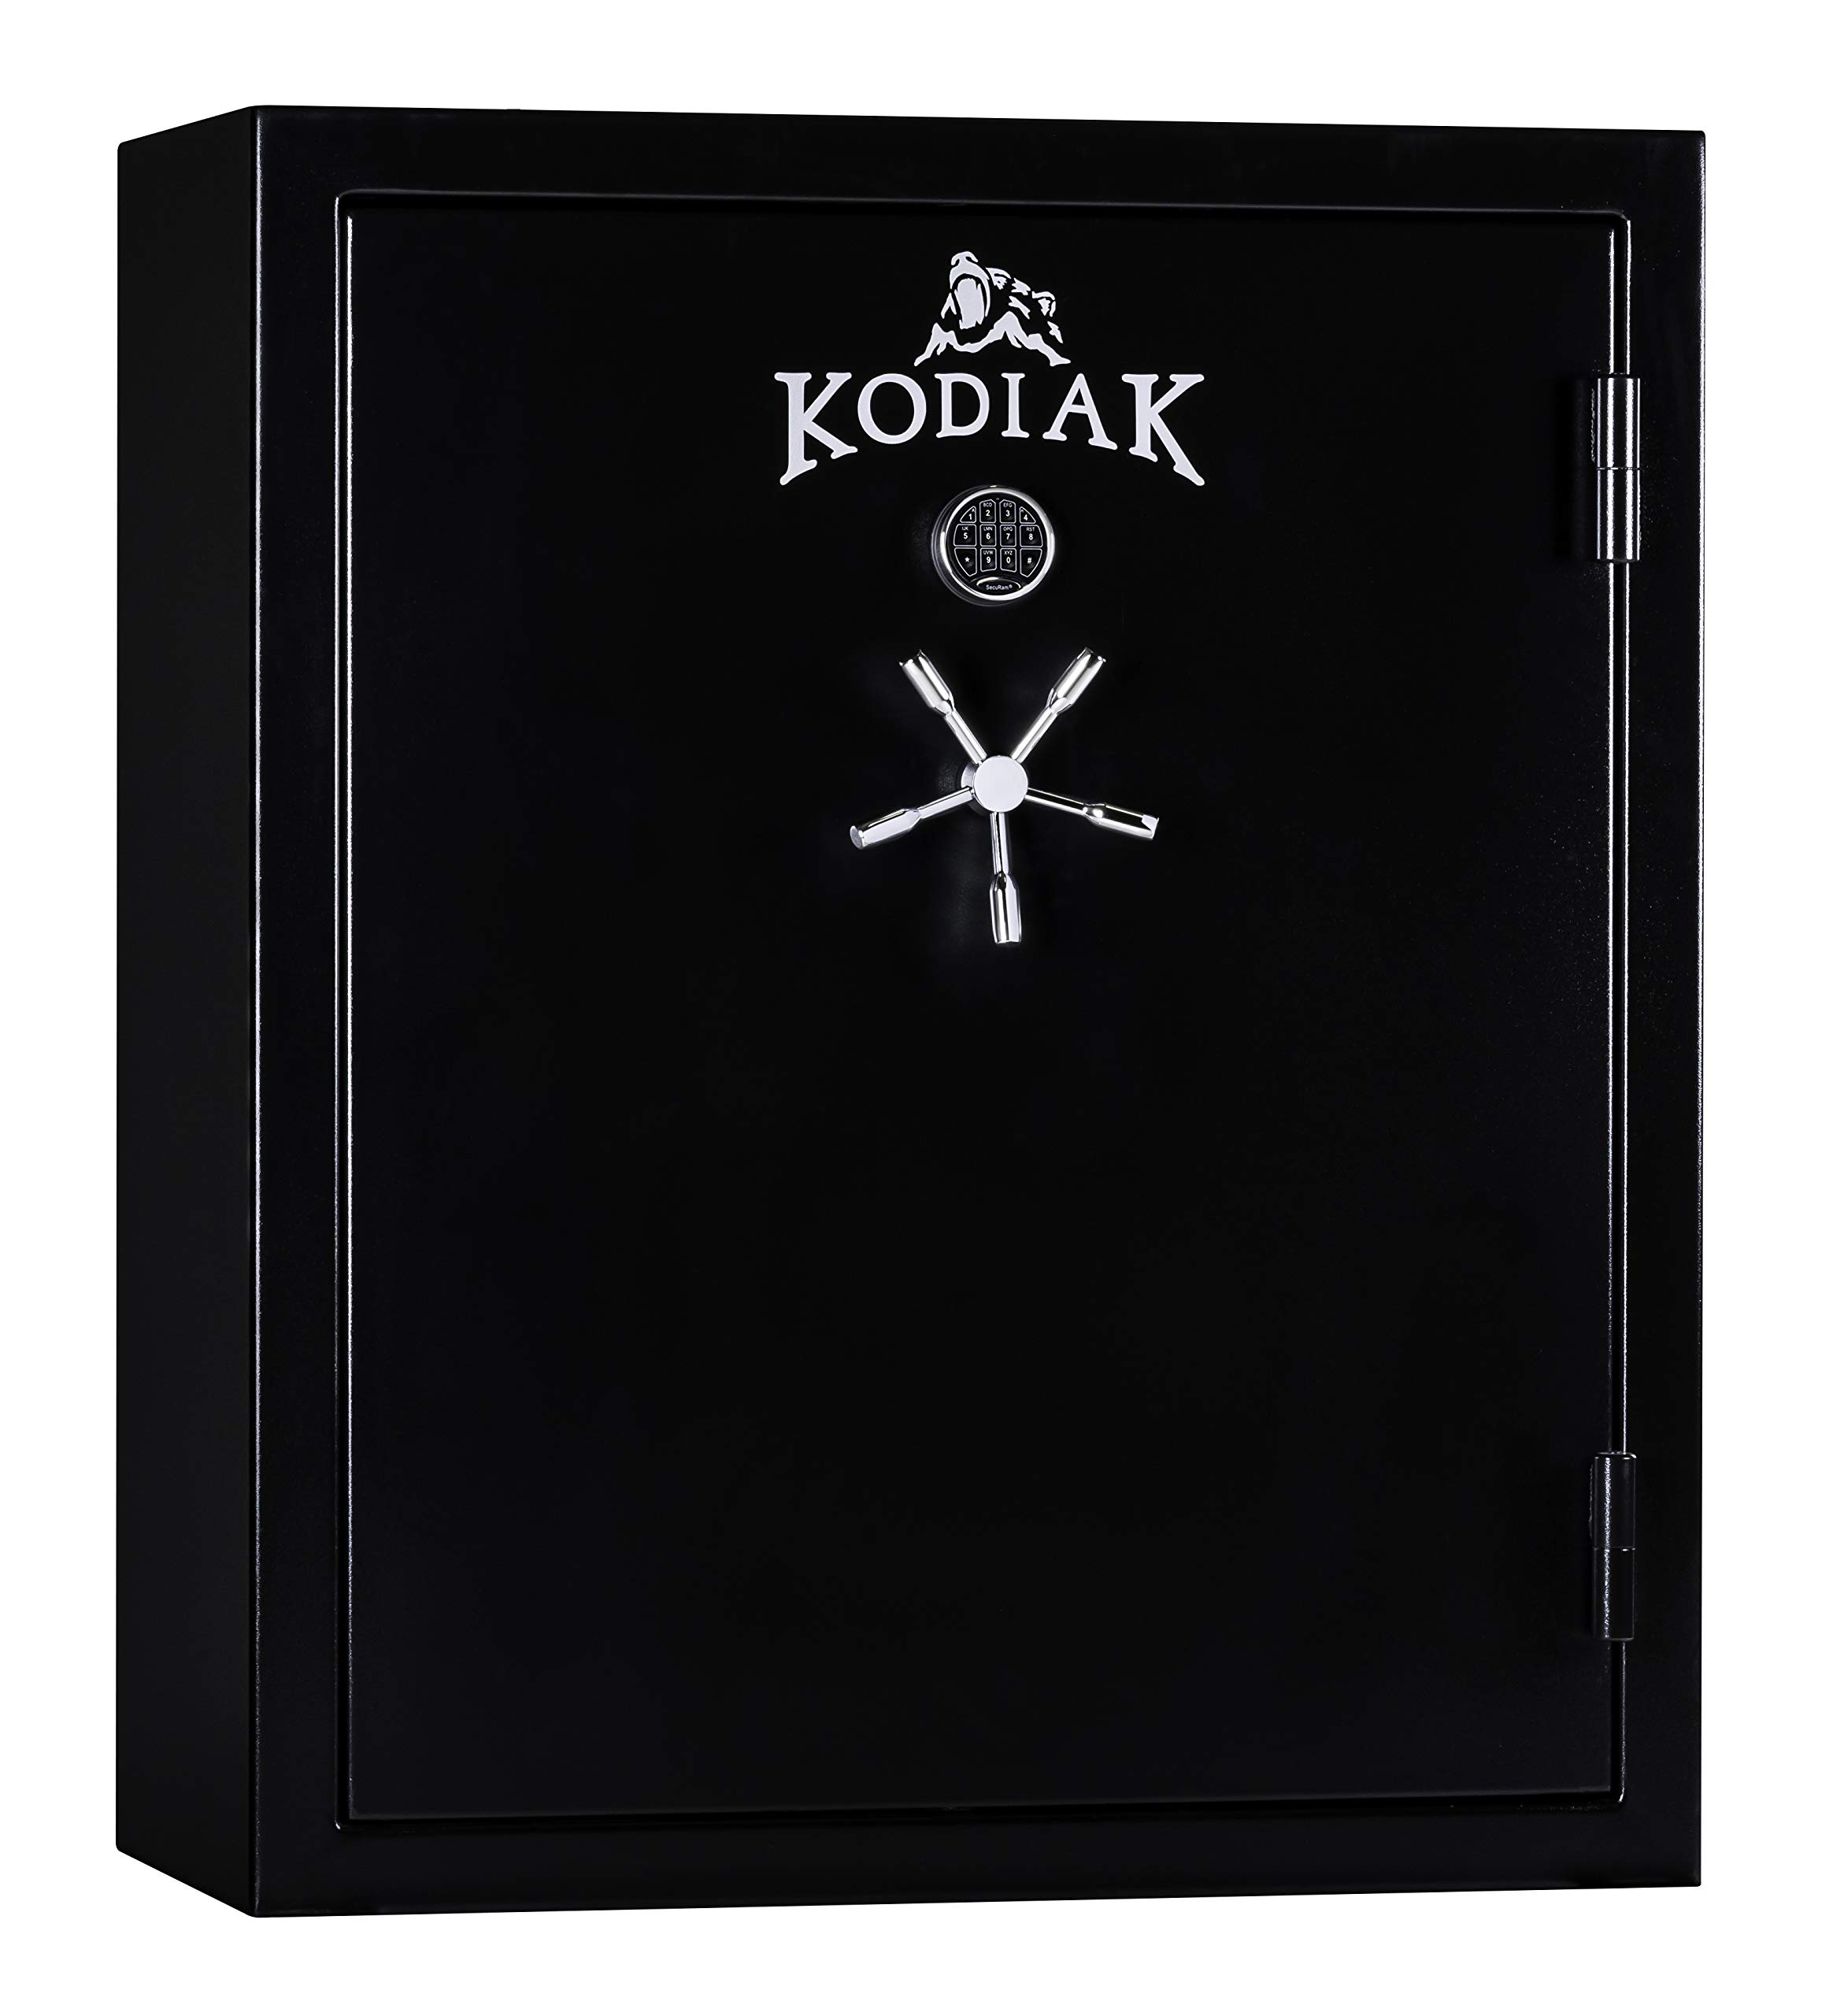 Kodiak KB5950EXS Import Gun Safe by Rhino Metals, 80 Long Guns and 10 Handguns, 900 lbs, 75 Minute Fire Protection, Electronic Lock and Bonus Deluxe Door Organizer by Kodiak